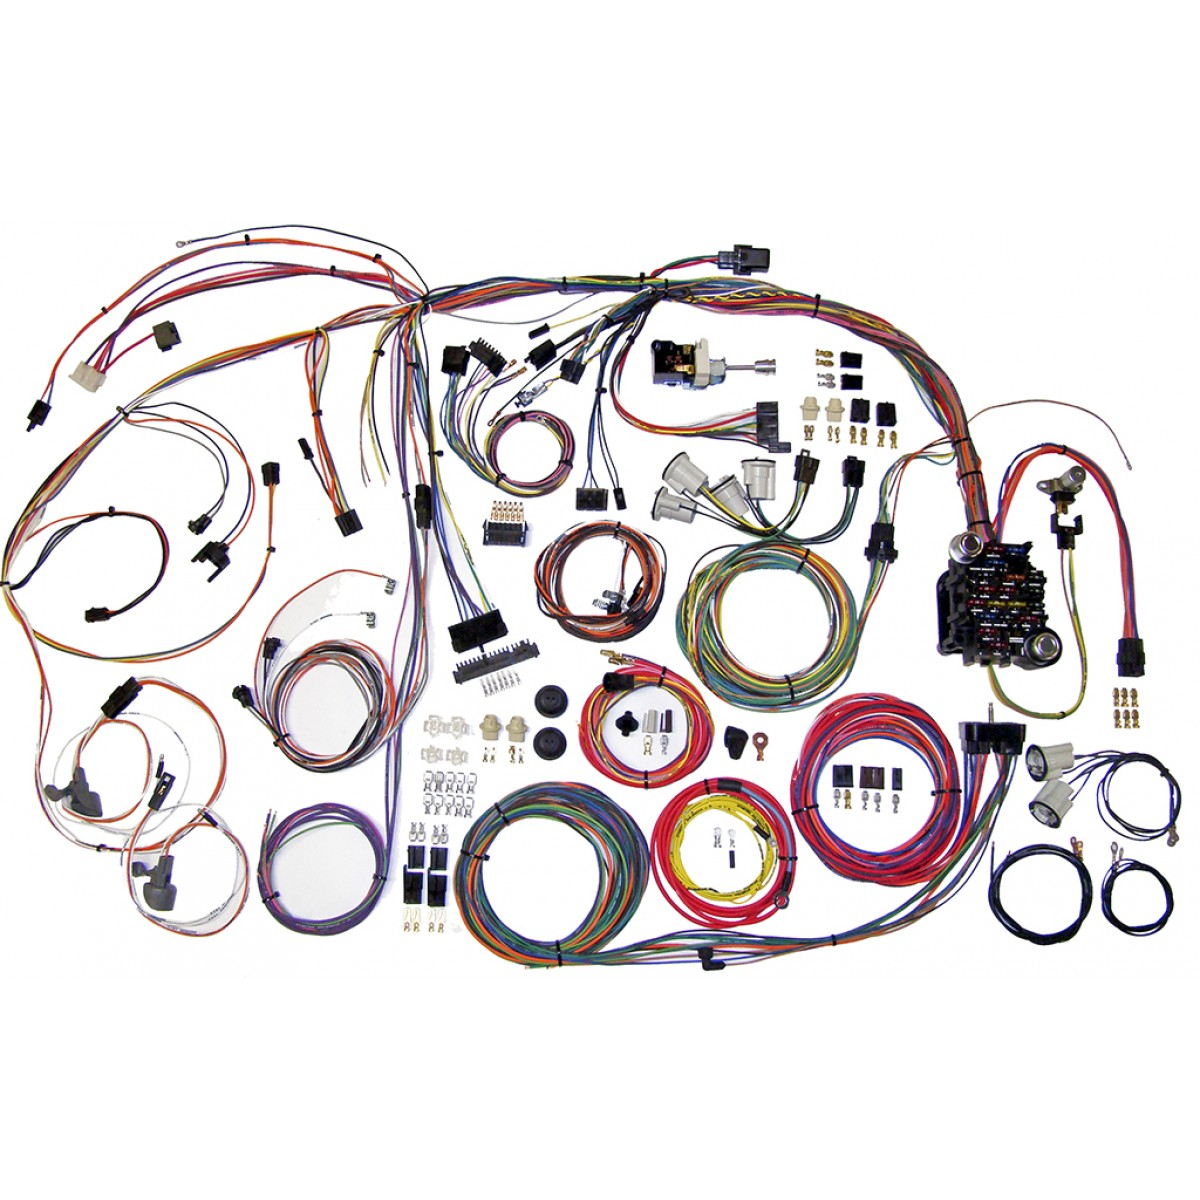 1970 1972 chevelle complete wiring harness kit 1970 1972 chevelle rh  code510 com 1970 chevelle engine